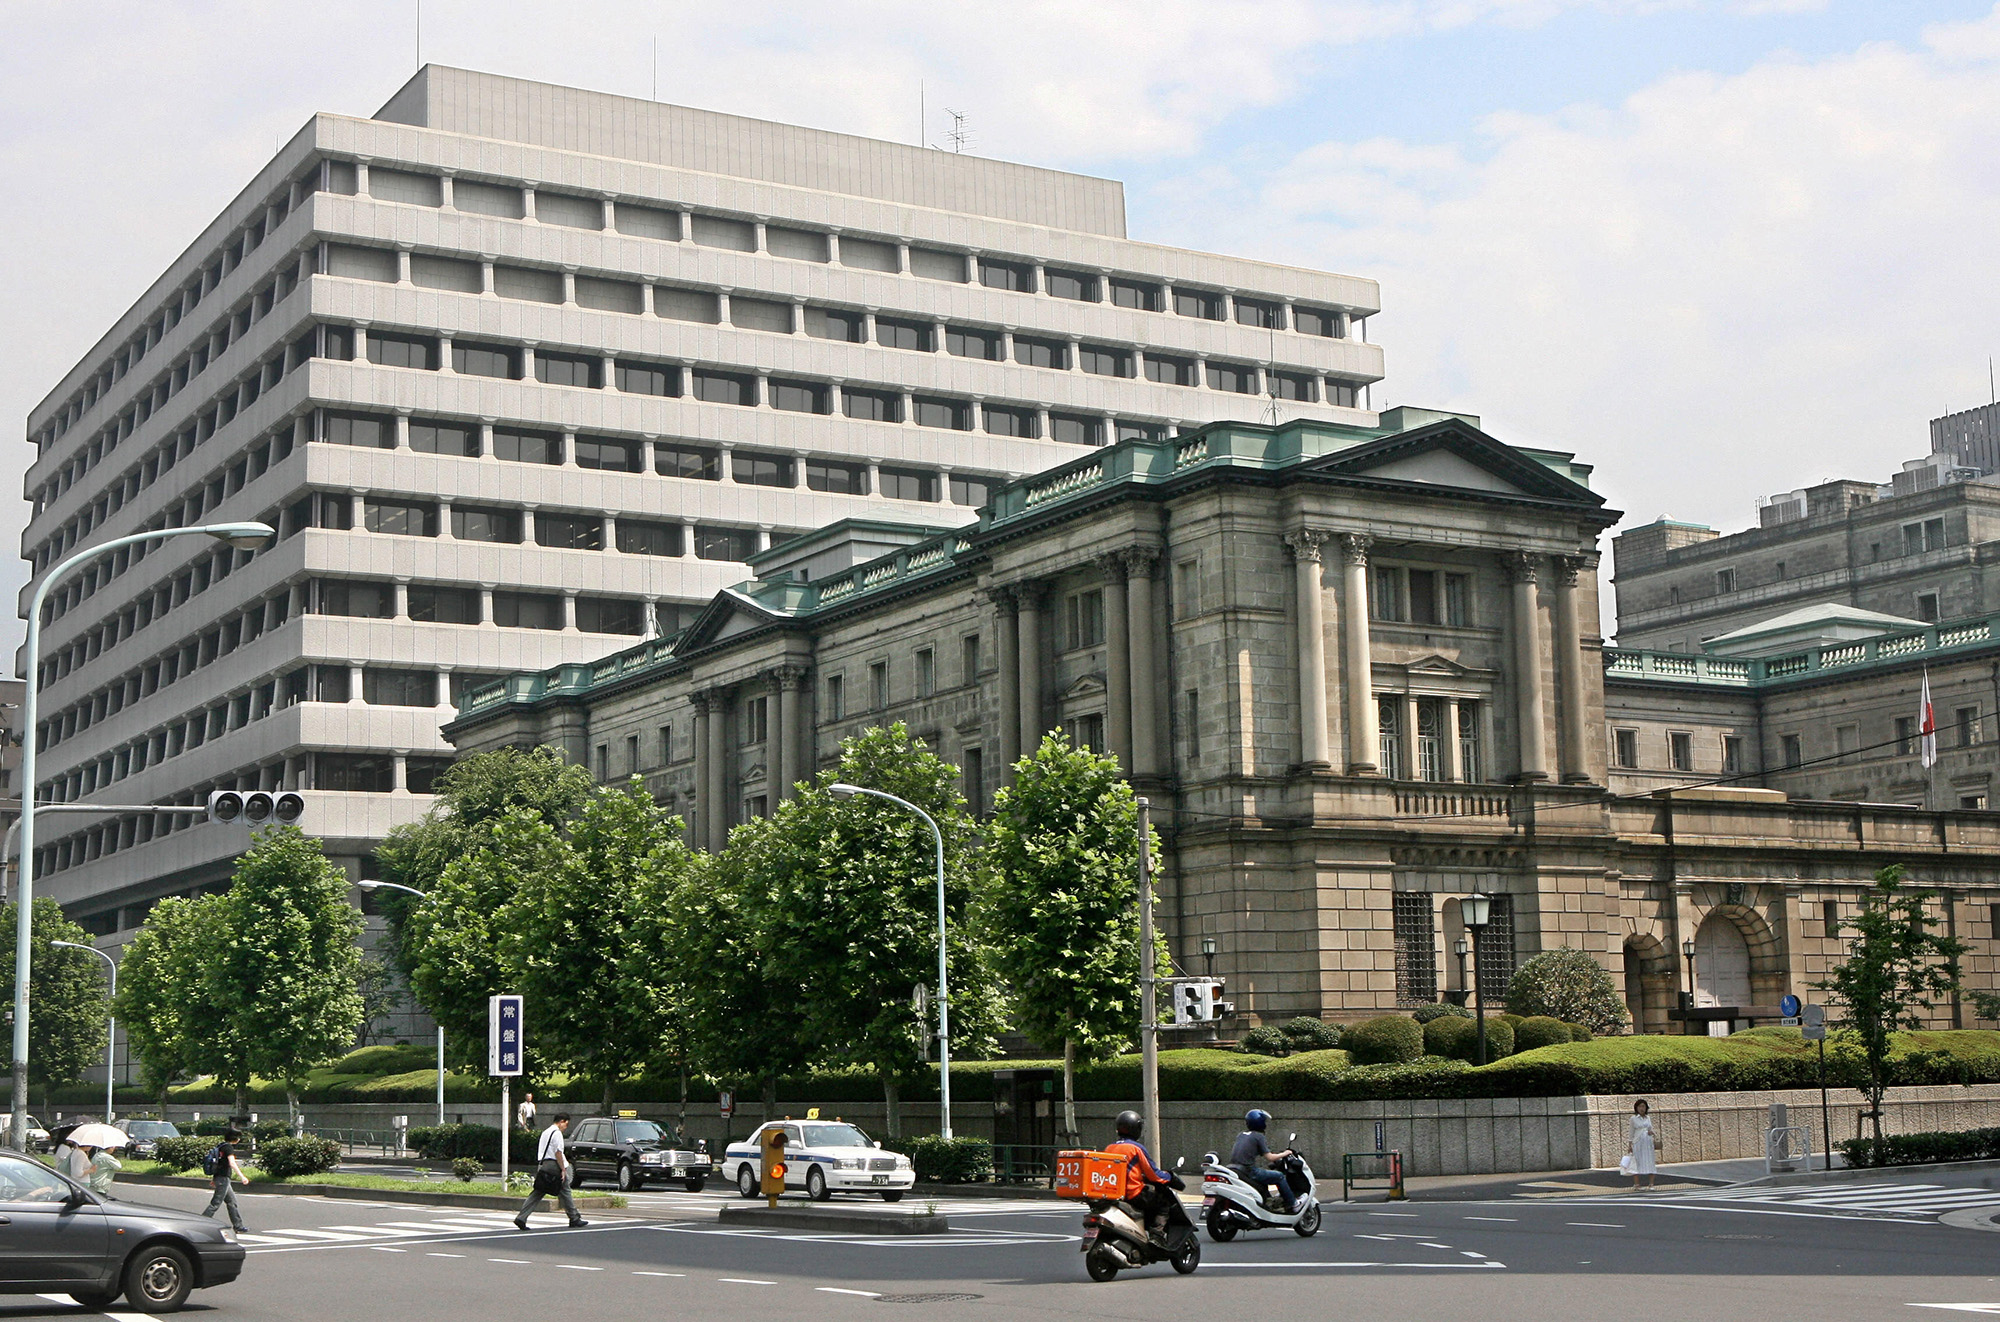 Tokyo, JAPAN: This photo shows the Bank of Japan (BOJ) building in Tokyo, 14 July 2006. Japanese share prices fell sharply in the morning trading before its central bank was widely expected to end over five years of zero interest rates. AFP PHOTO/Kazuhiro NOGI (Photo credit should read KAZUHIRO NOGI/AFP/Getty Images)